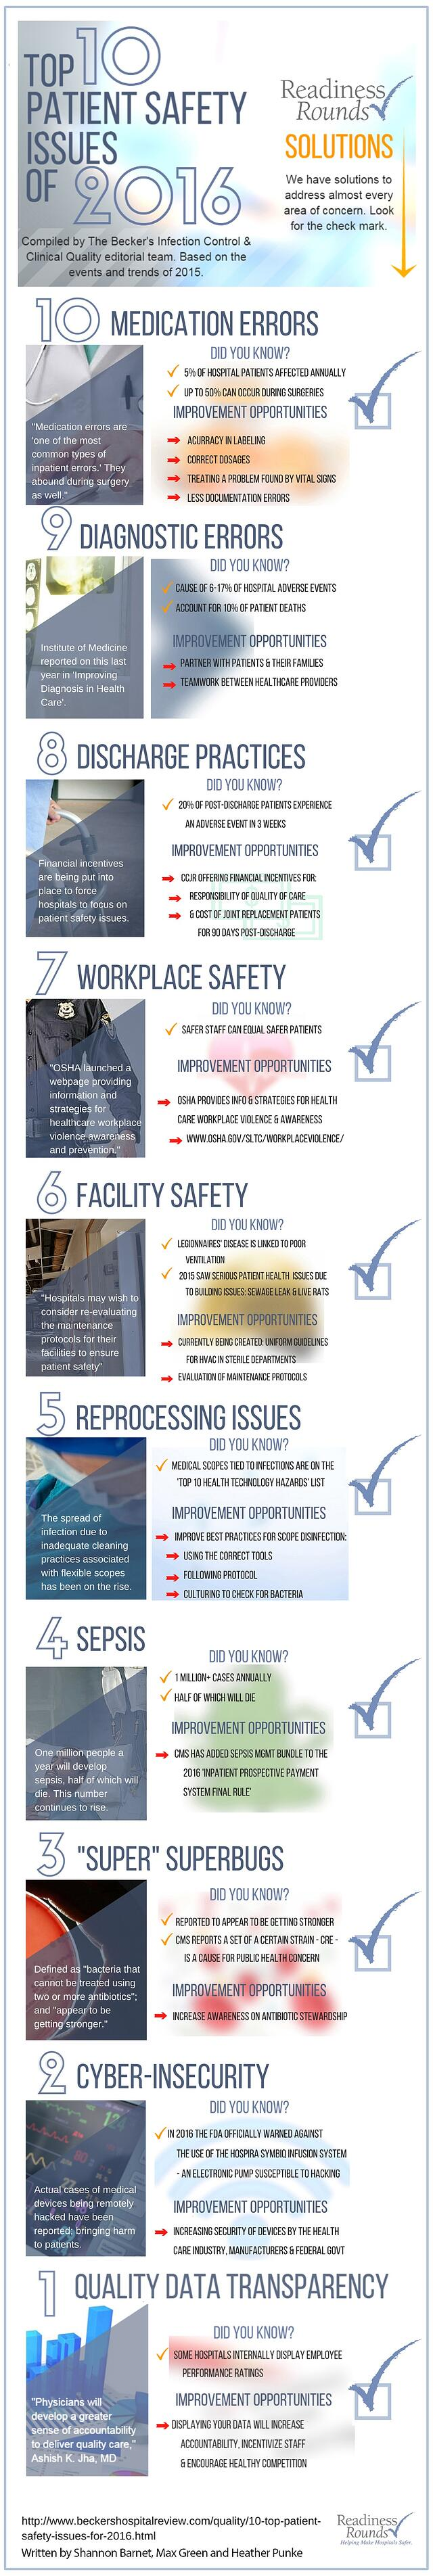 Top 10 patient safety issues infographic